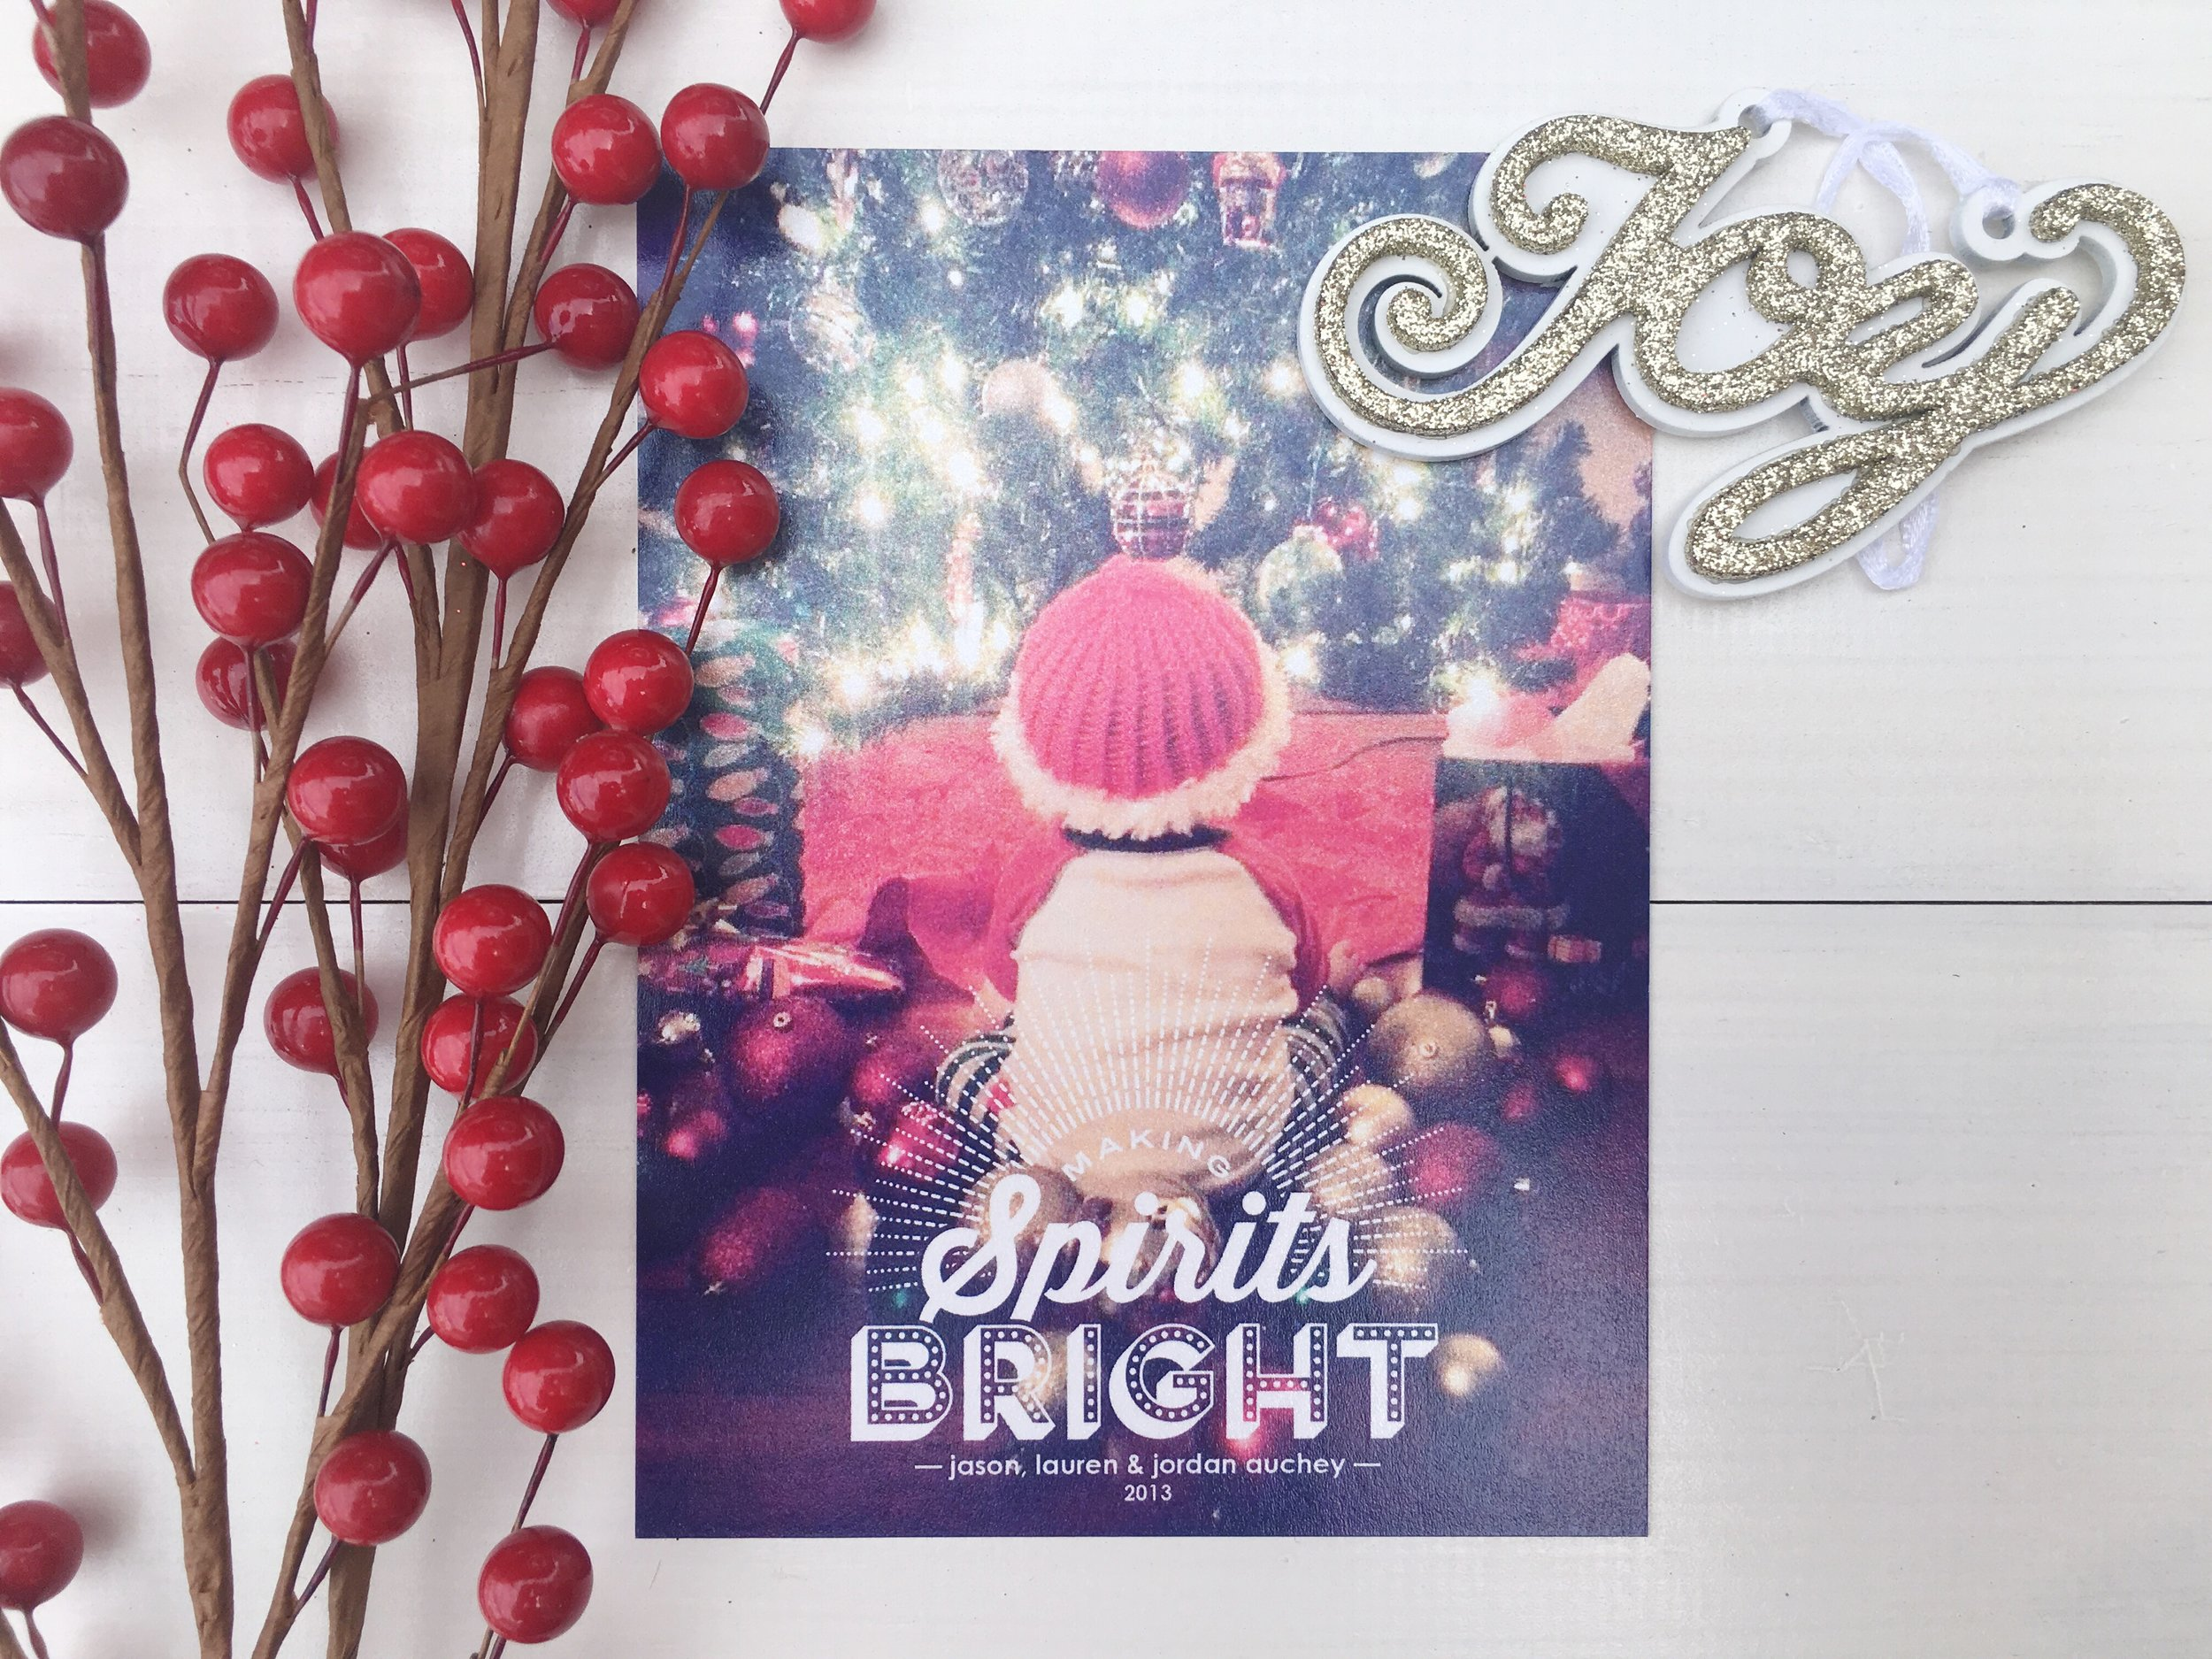 jsd making spirits bright christmas card.jpg